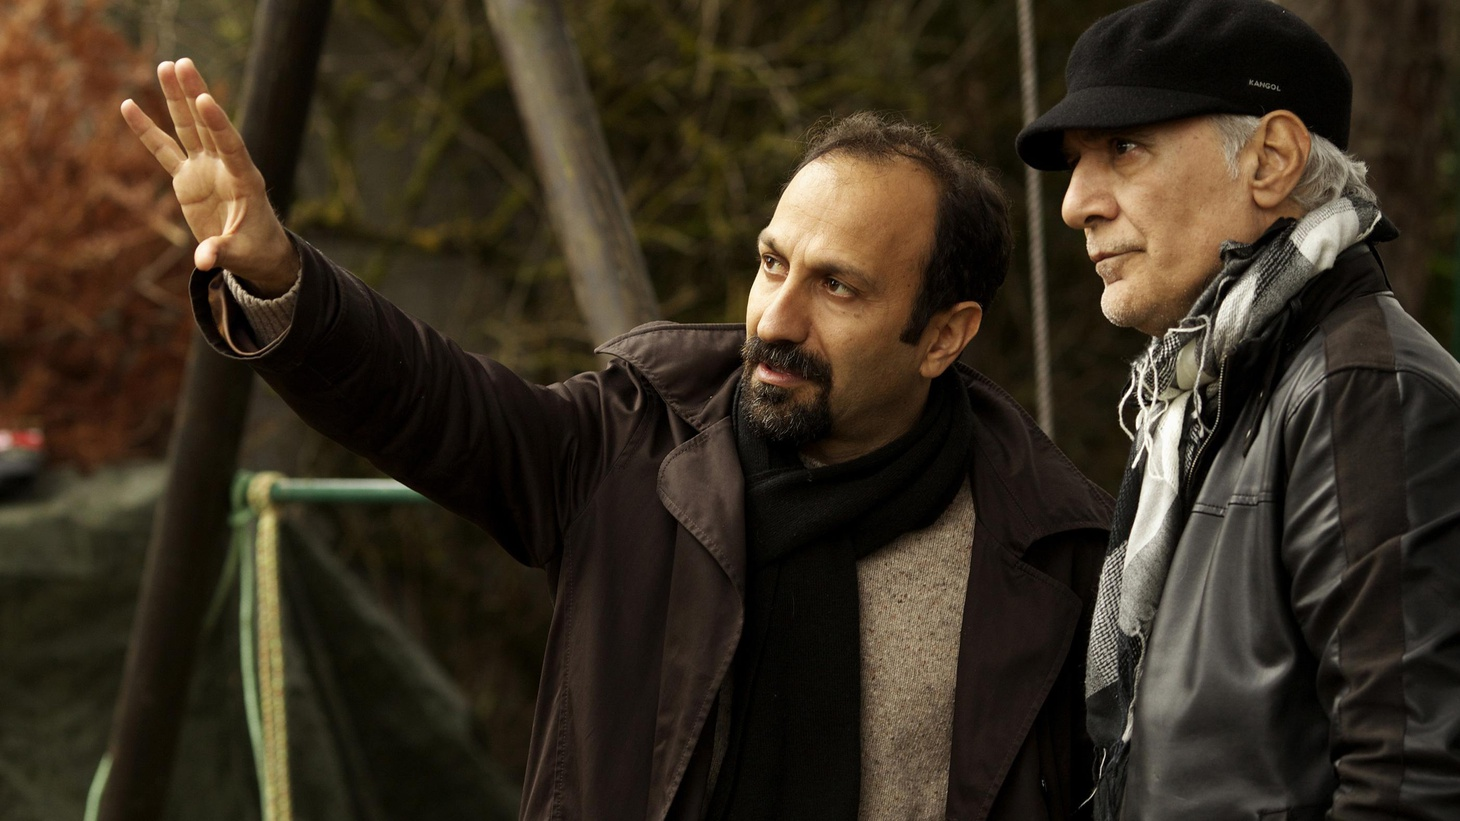 """Oscar-winning filmmaker Asghar Farhadi on """"A Separation,"""" making movies in Iran, and his new movie, """"The Past."""""""